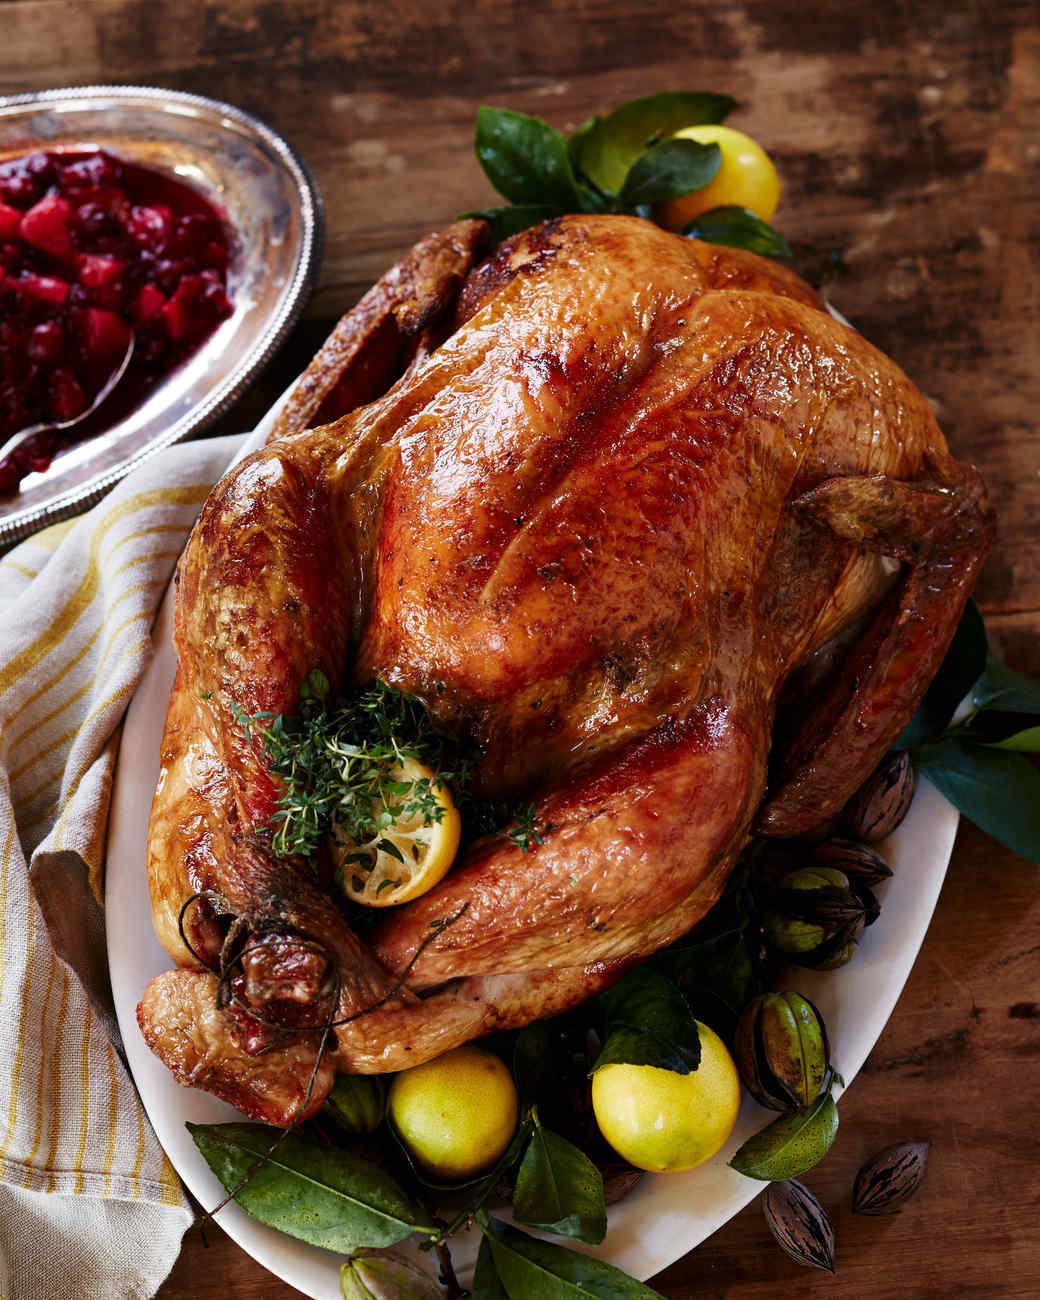 Grilled Salt-and-Pepper Turkey with Giblet Gravy